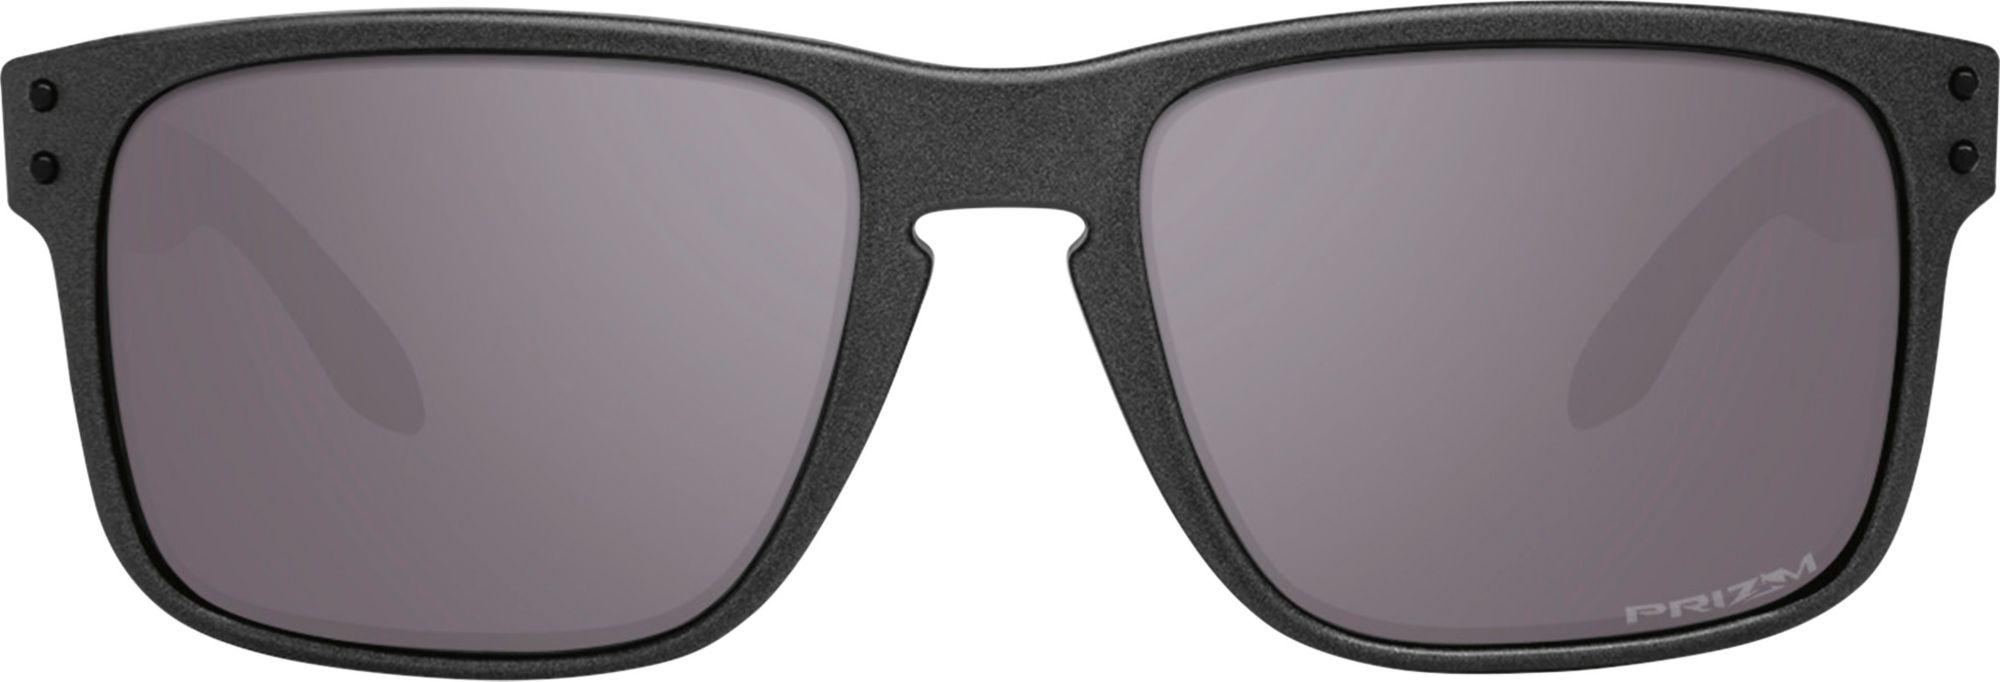 136cf86513 Oakley - Gray Holbrook Prizm Daily Polarized Steel Collection Sunglasses  for Men - Lyst. View fullscreen